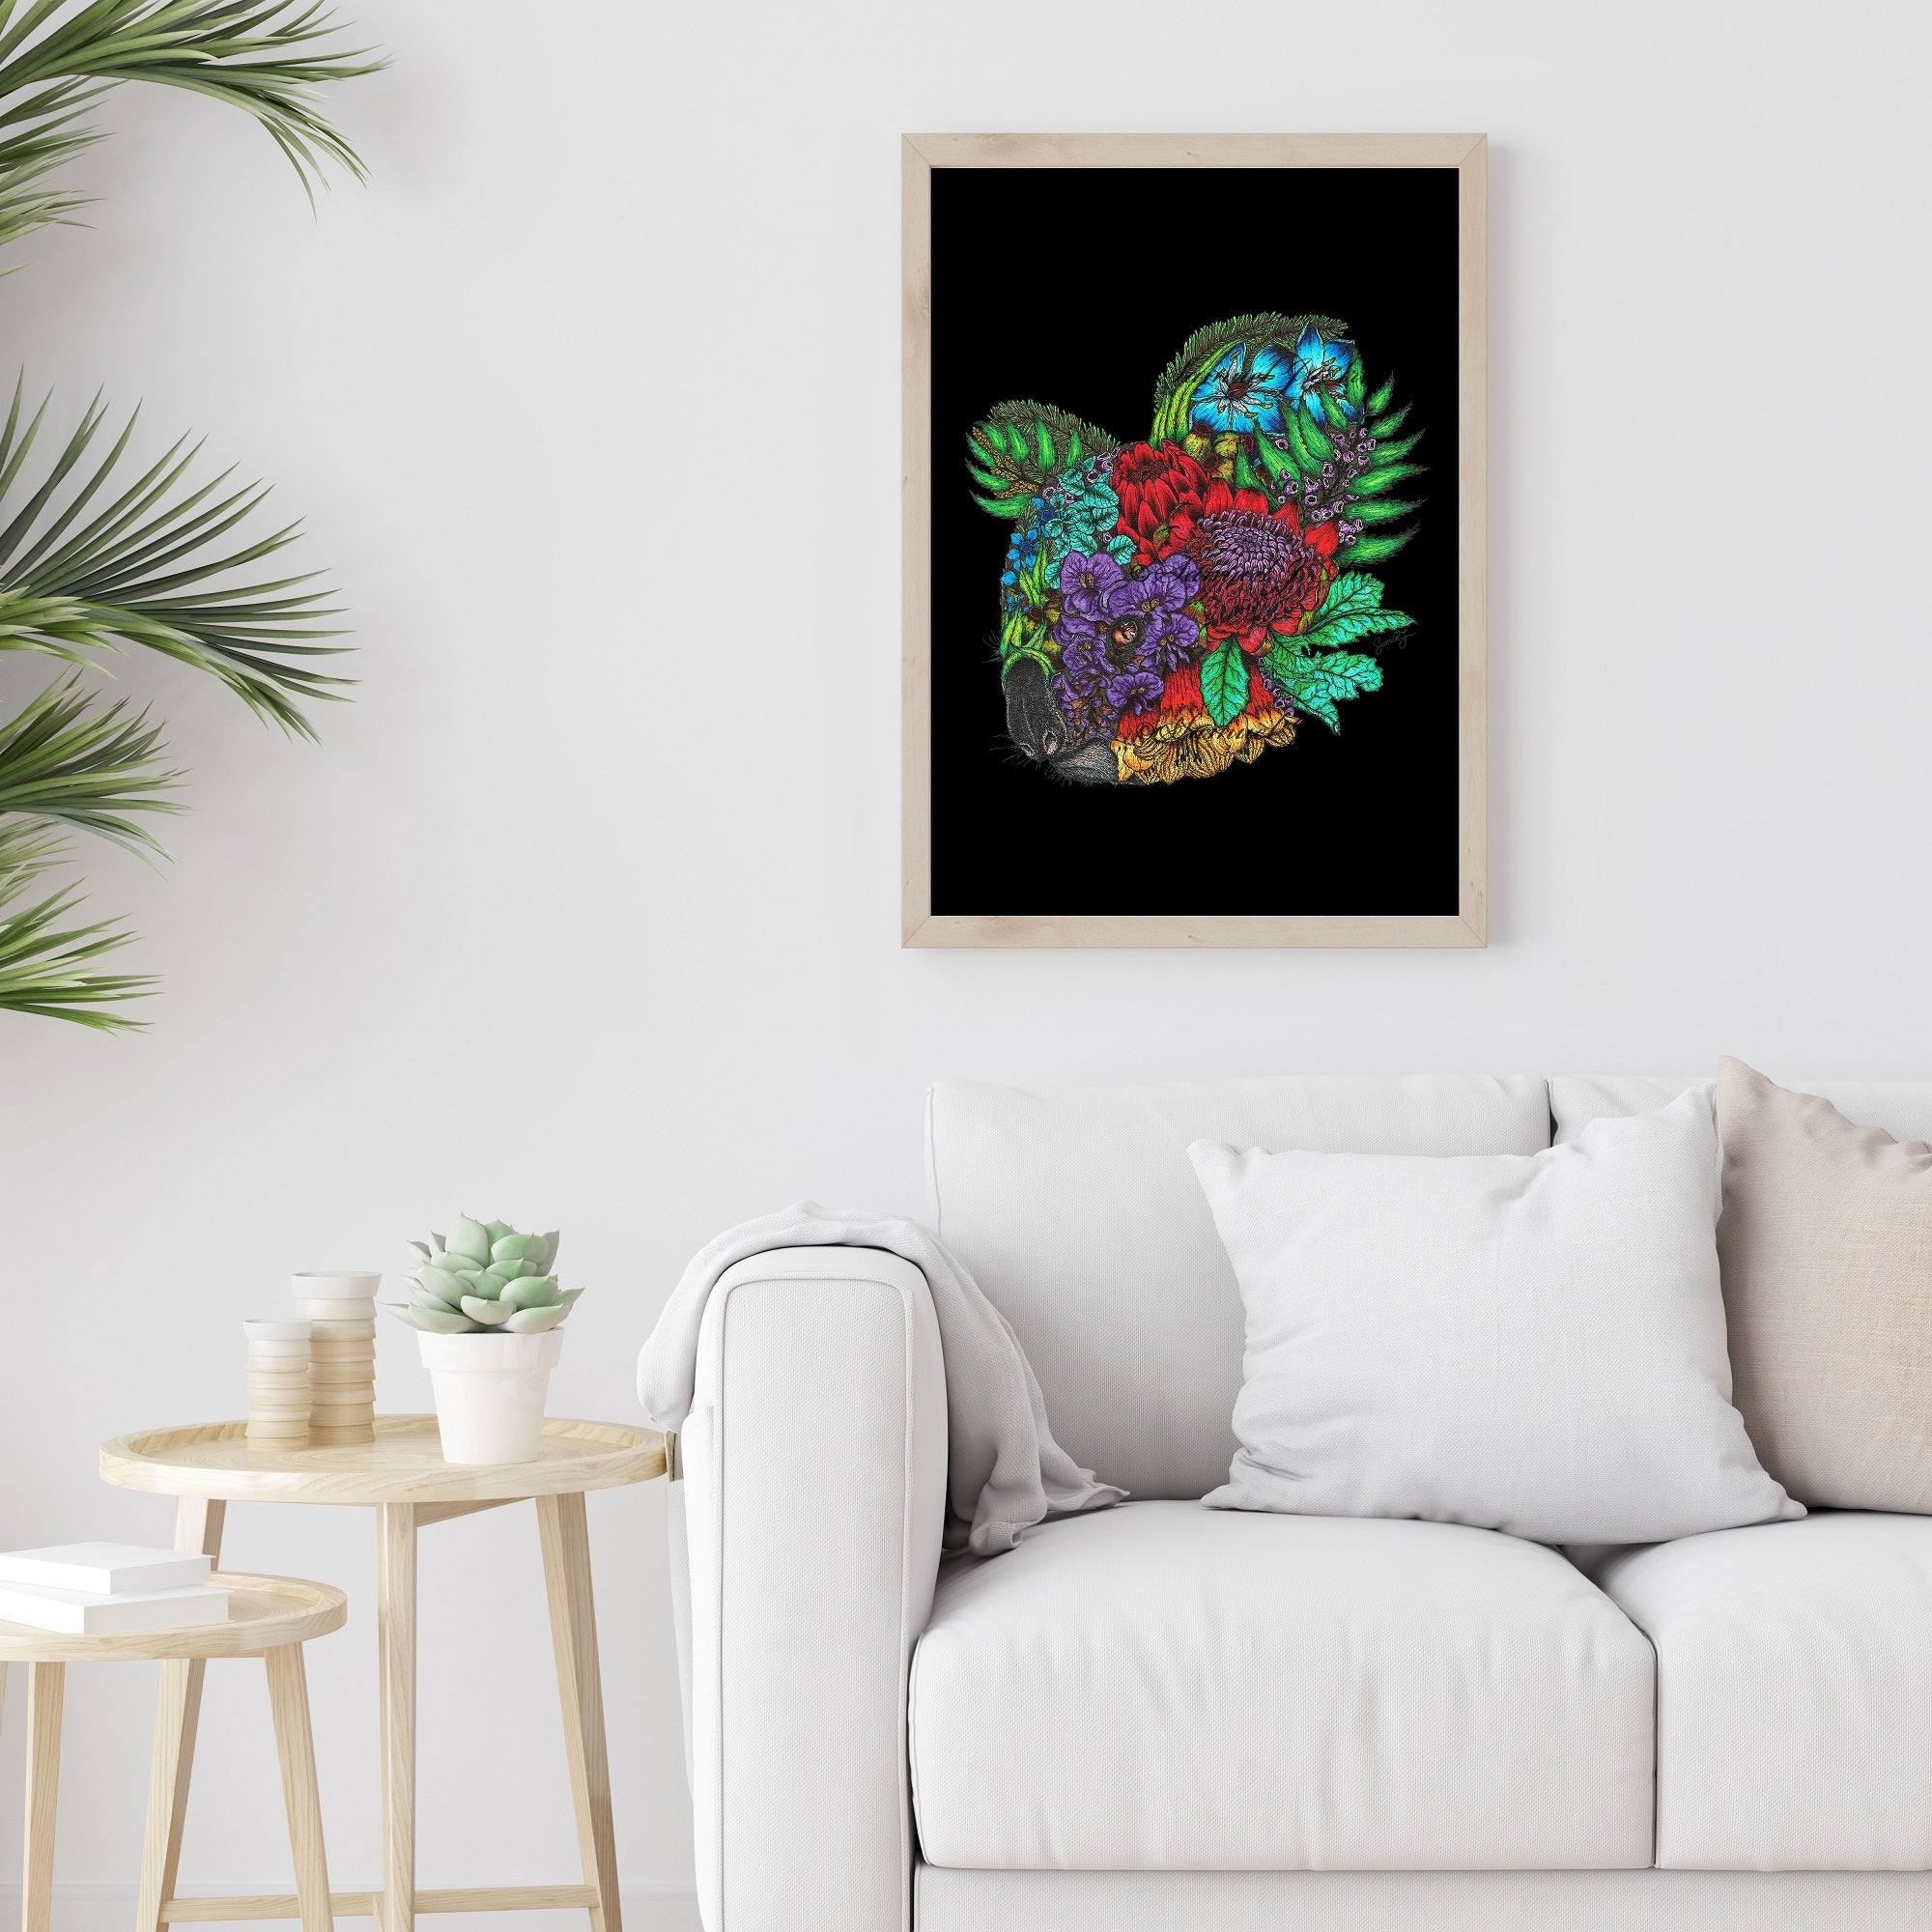 Floral Koala 2 - Colour - Black Background - Print SALE